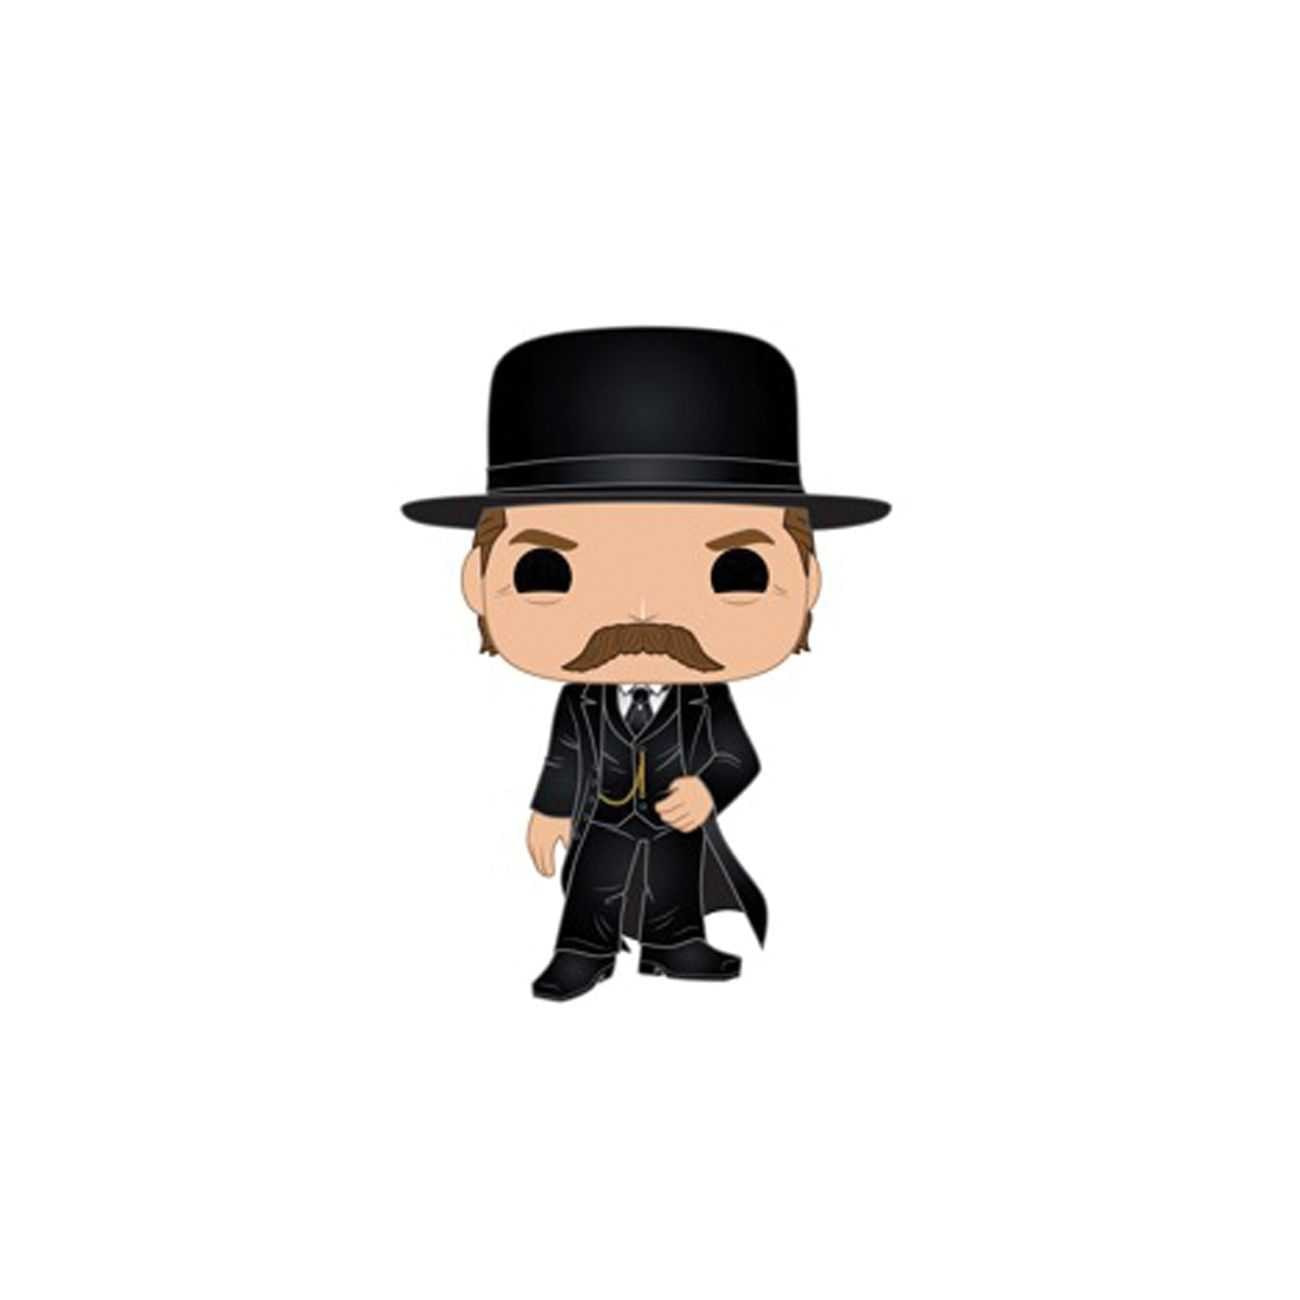 Funko Weekly Round Up – Funko Shop Exclusives, Game of Thrones and More